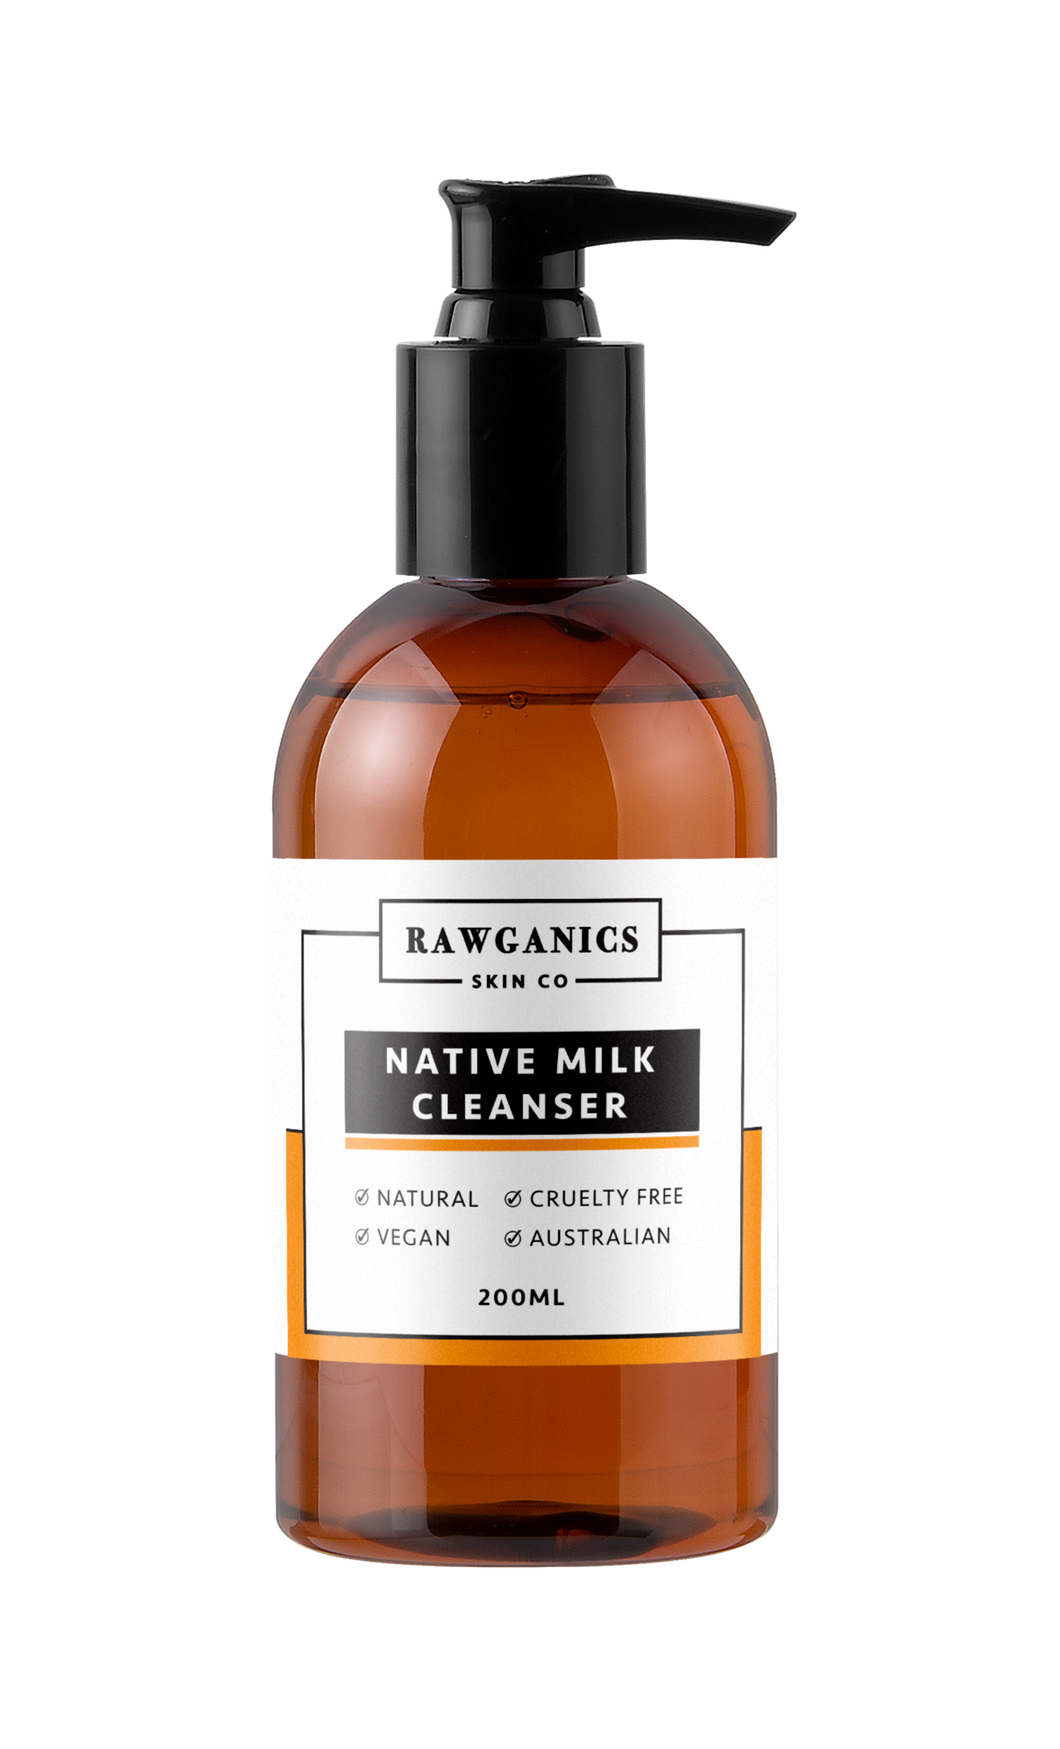 Native Milk Cleanser